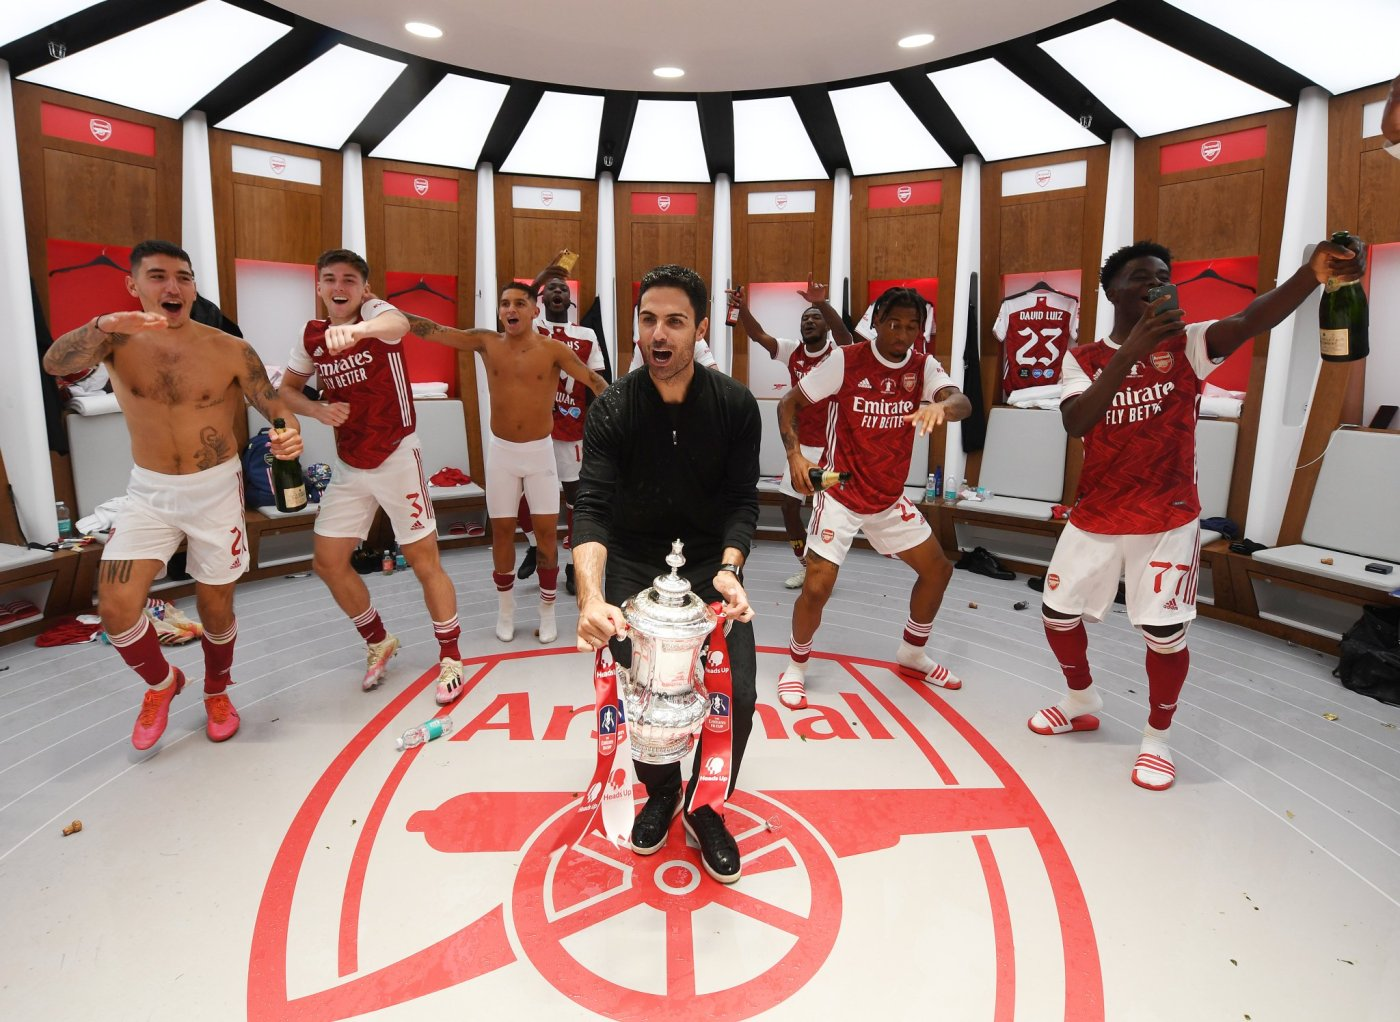 Superb dressing room shot as Mikel Arteta and players celebrate FA Cup win